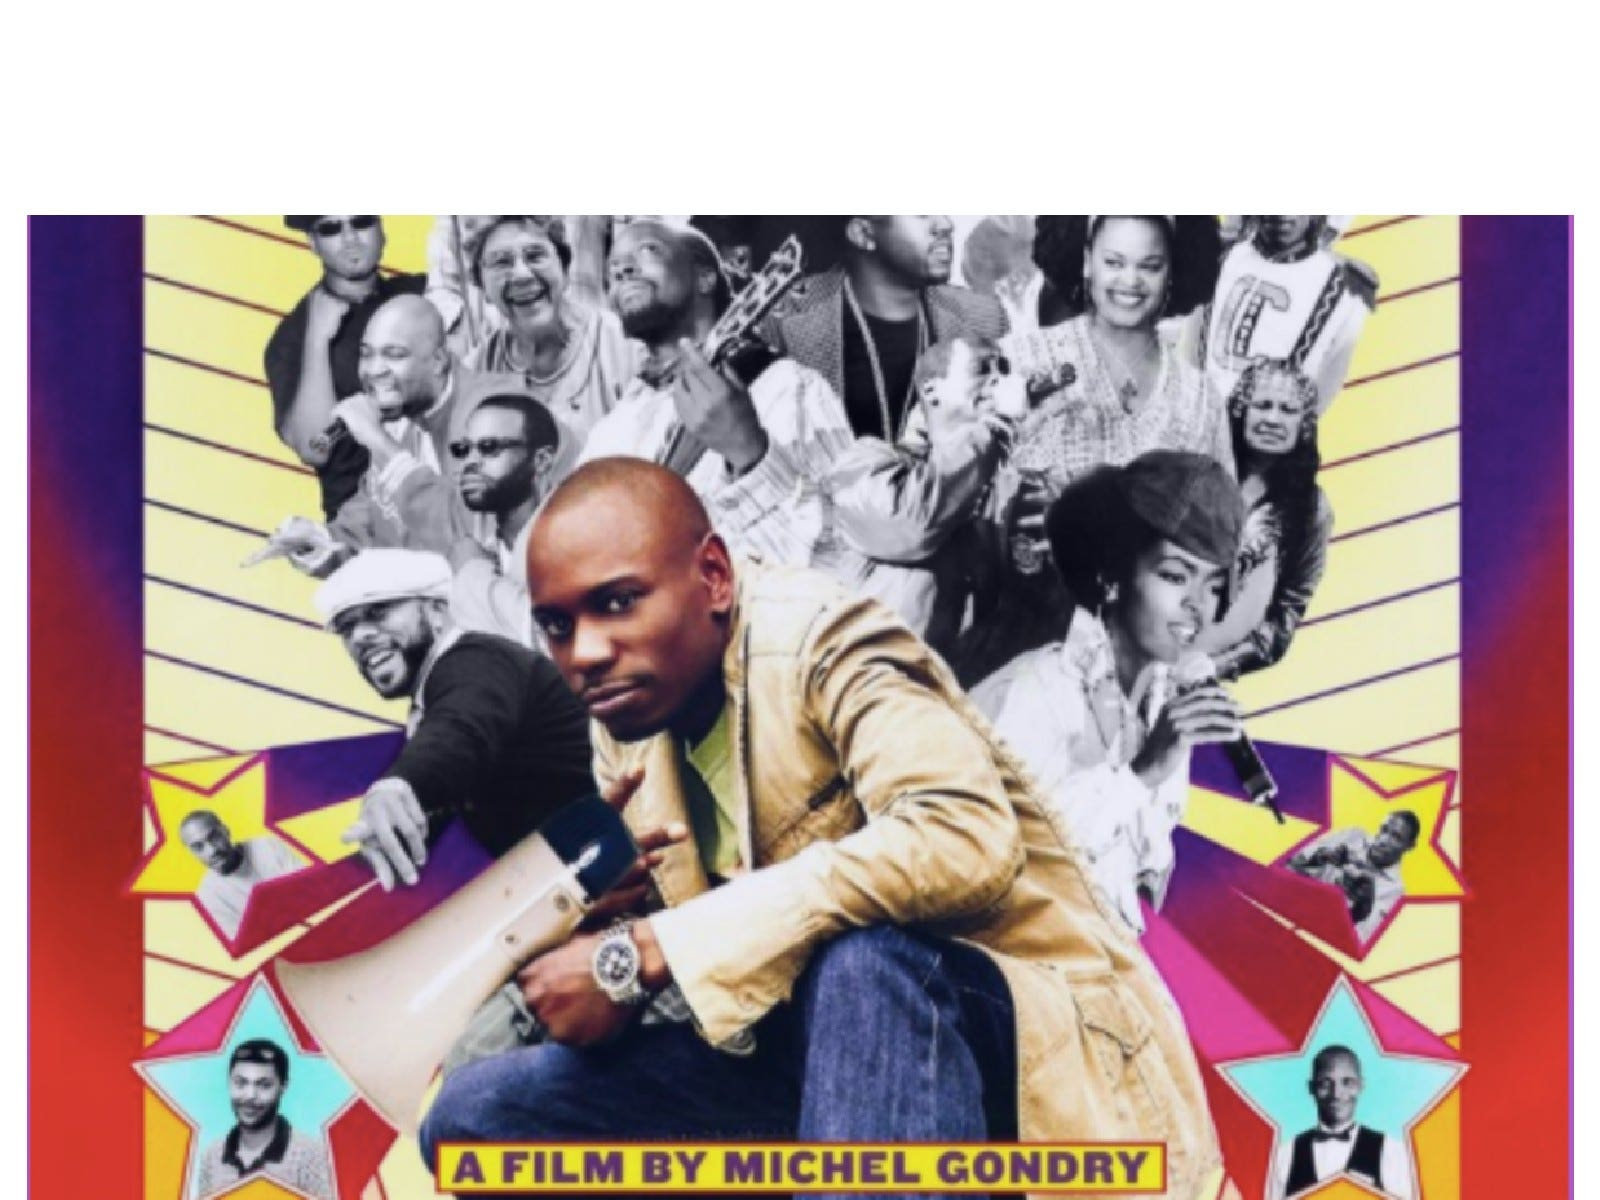 Main image for event titled DAVE CHAPPELLE'S BLOCK PARTY